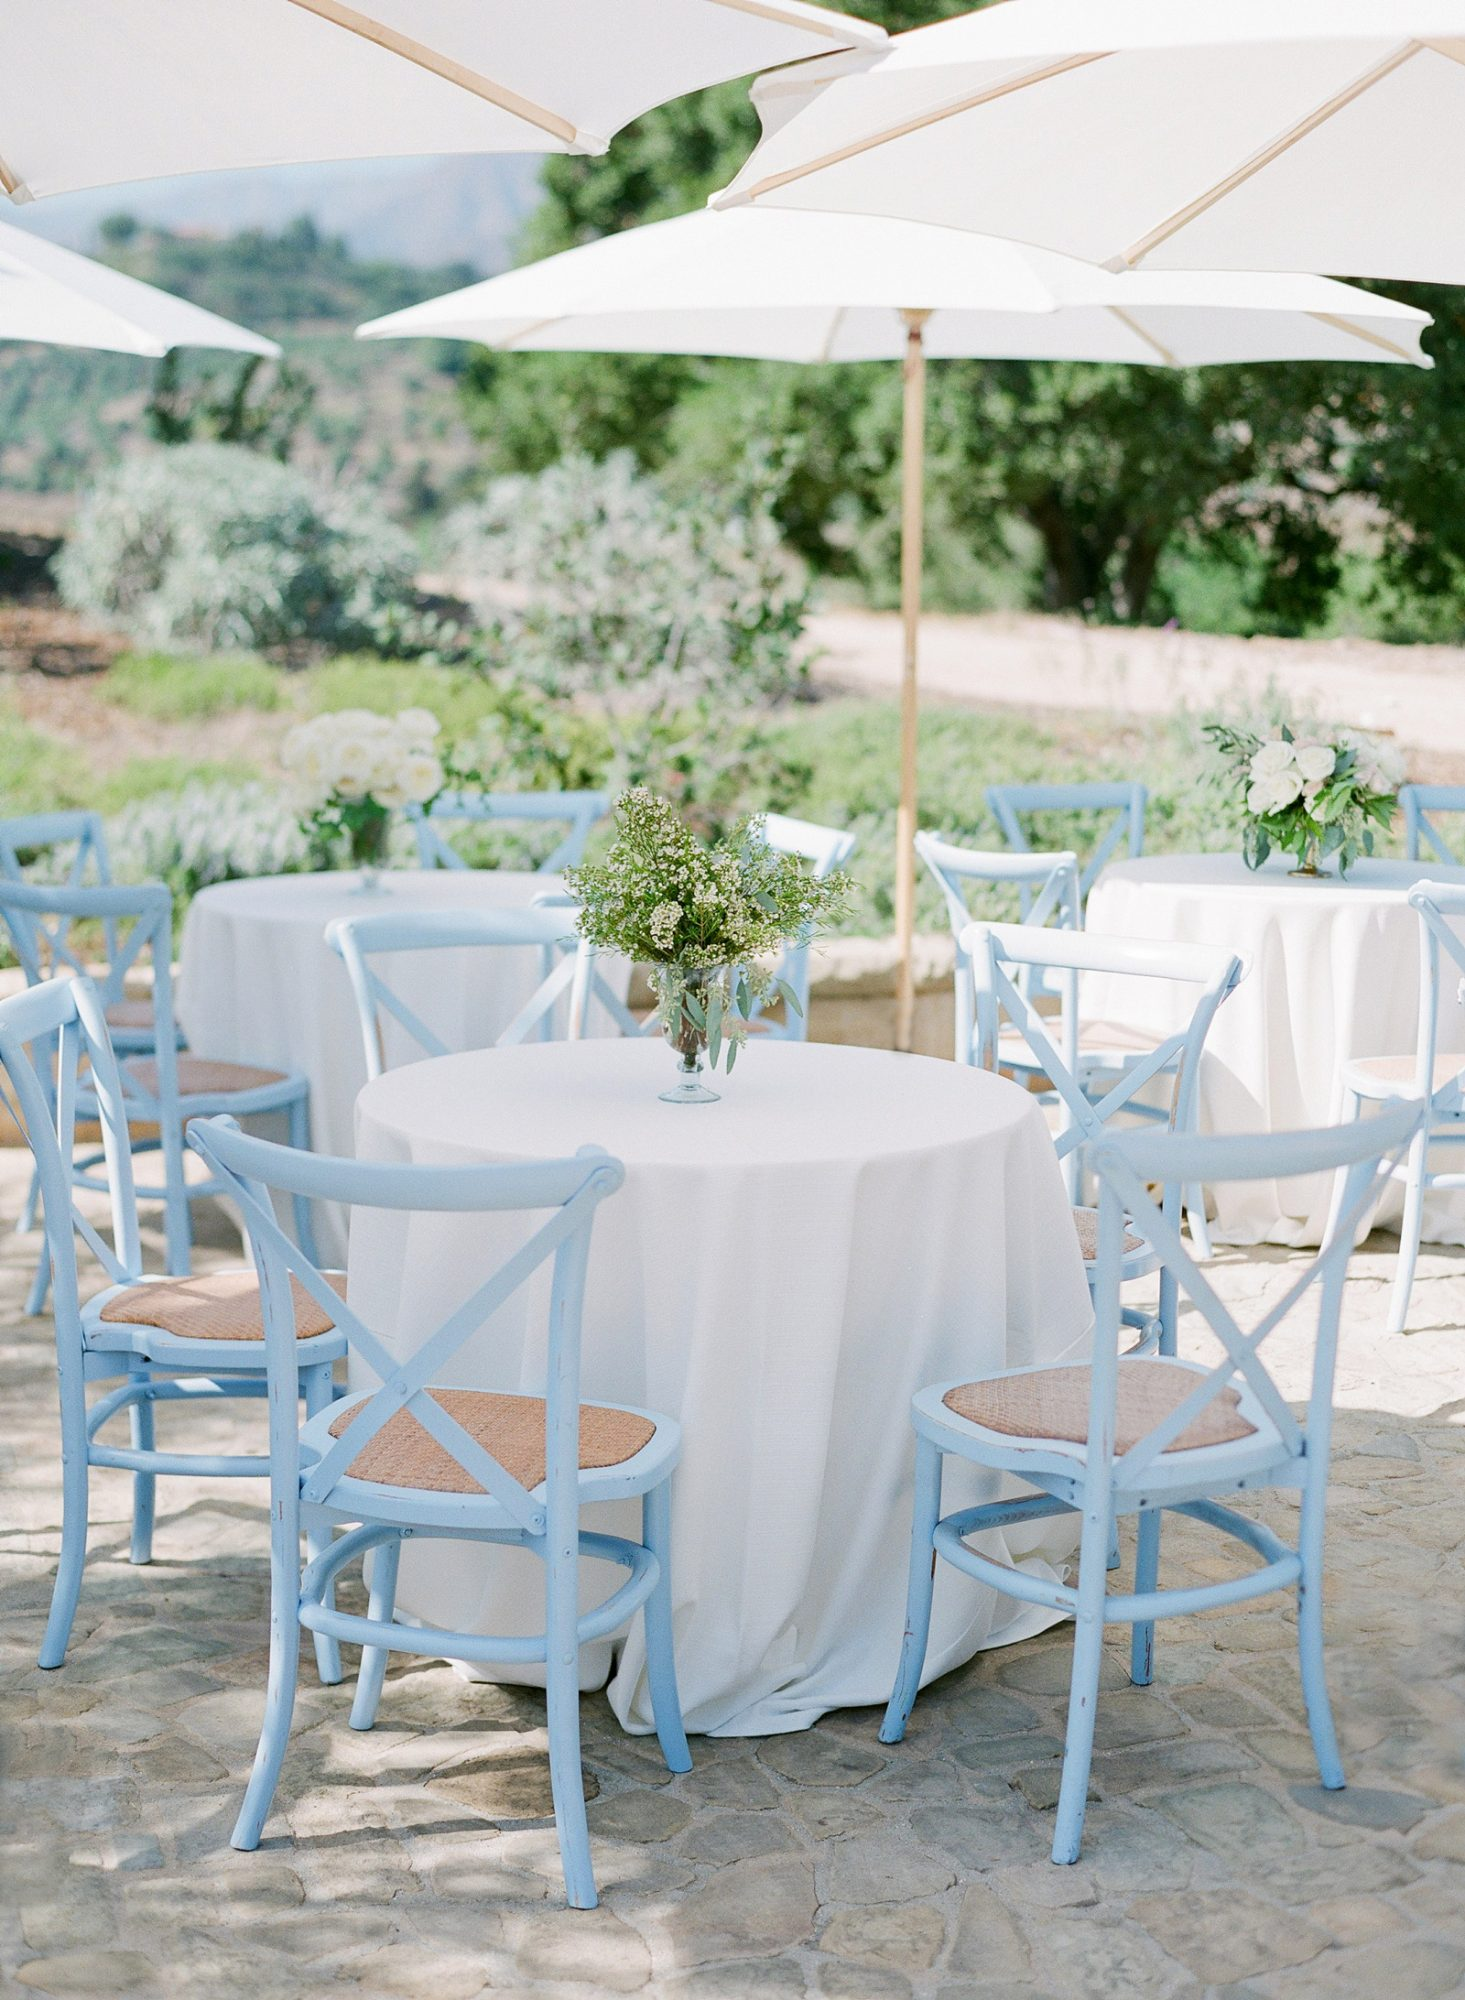 white tables with white umbrellas and light blue chairs